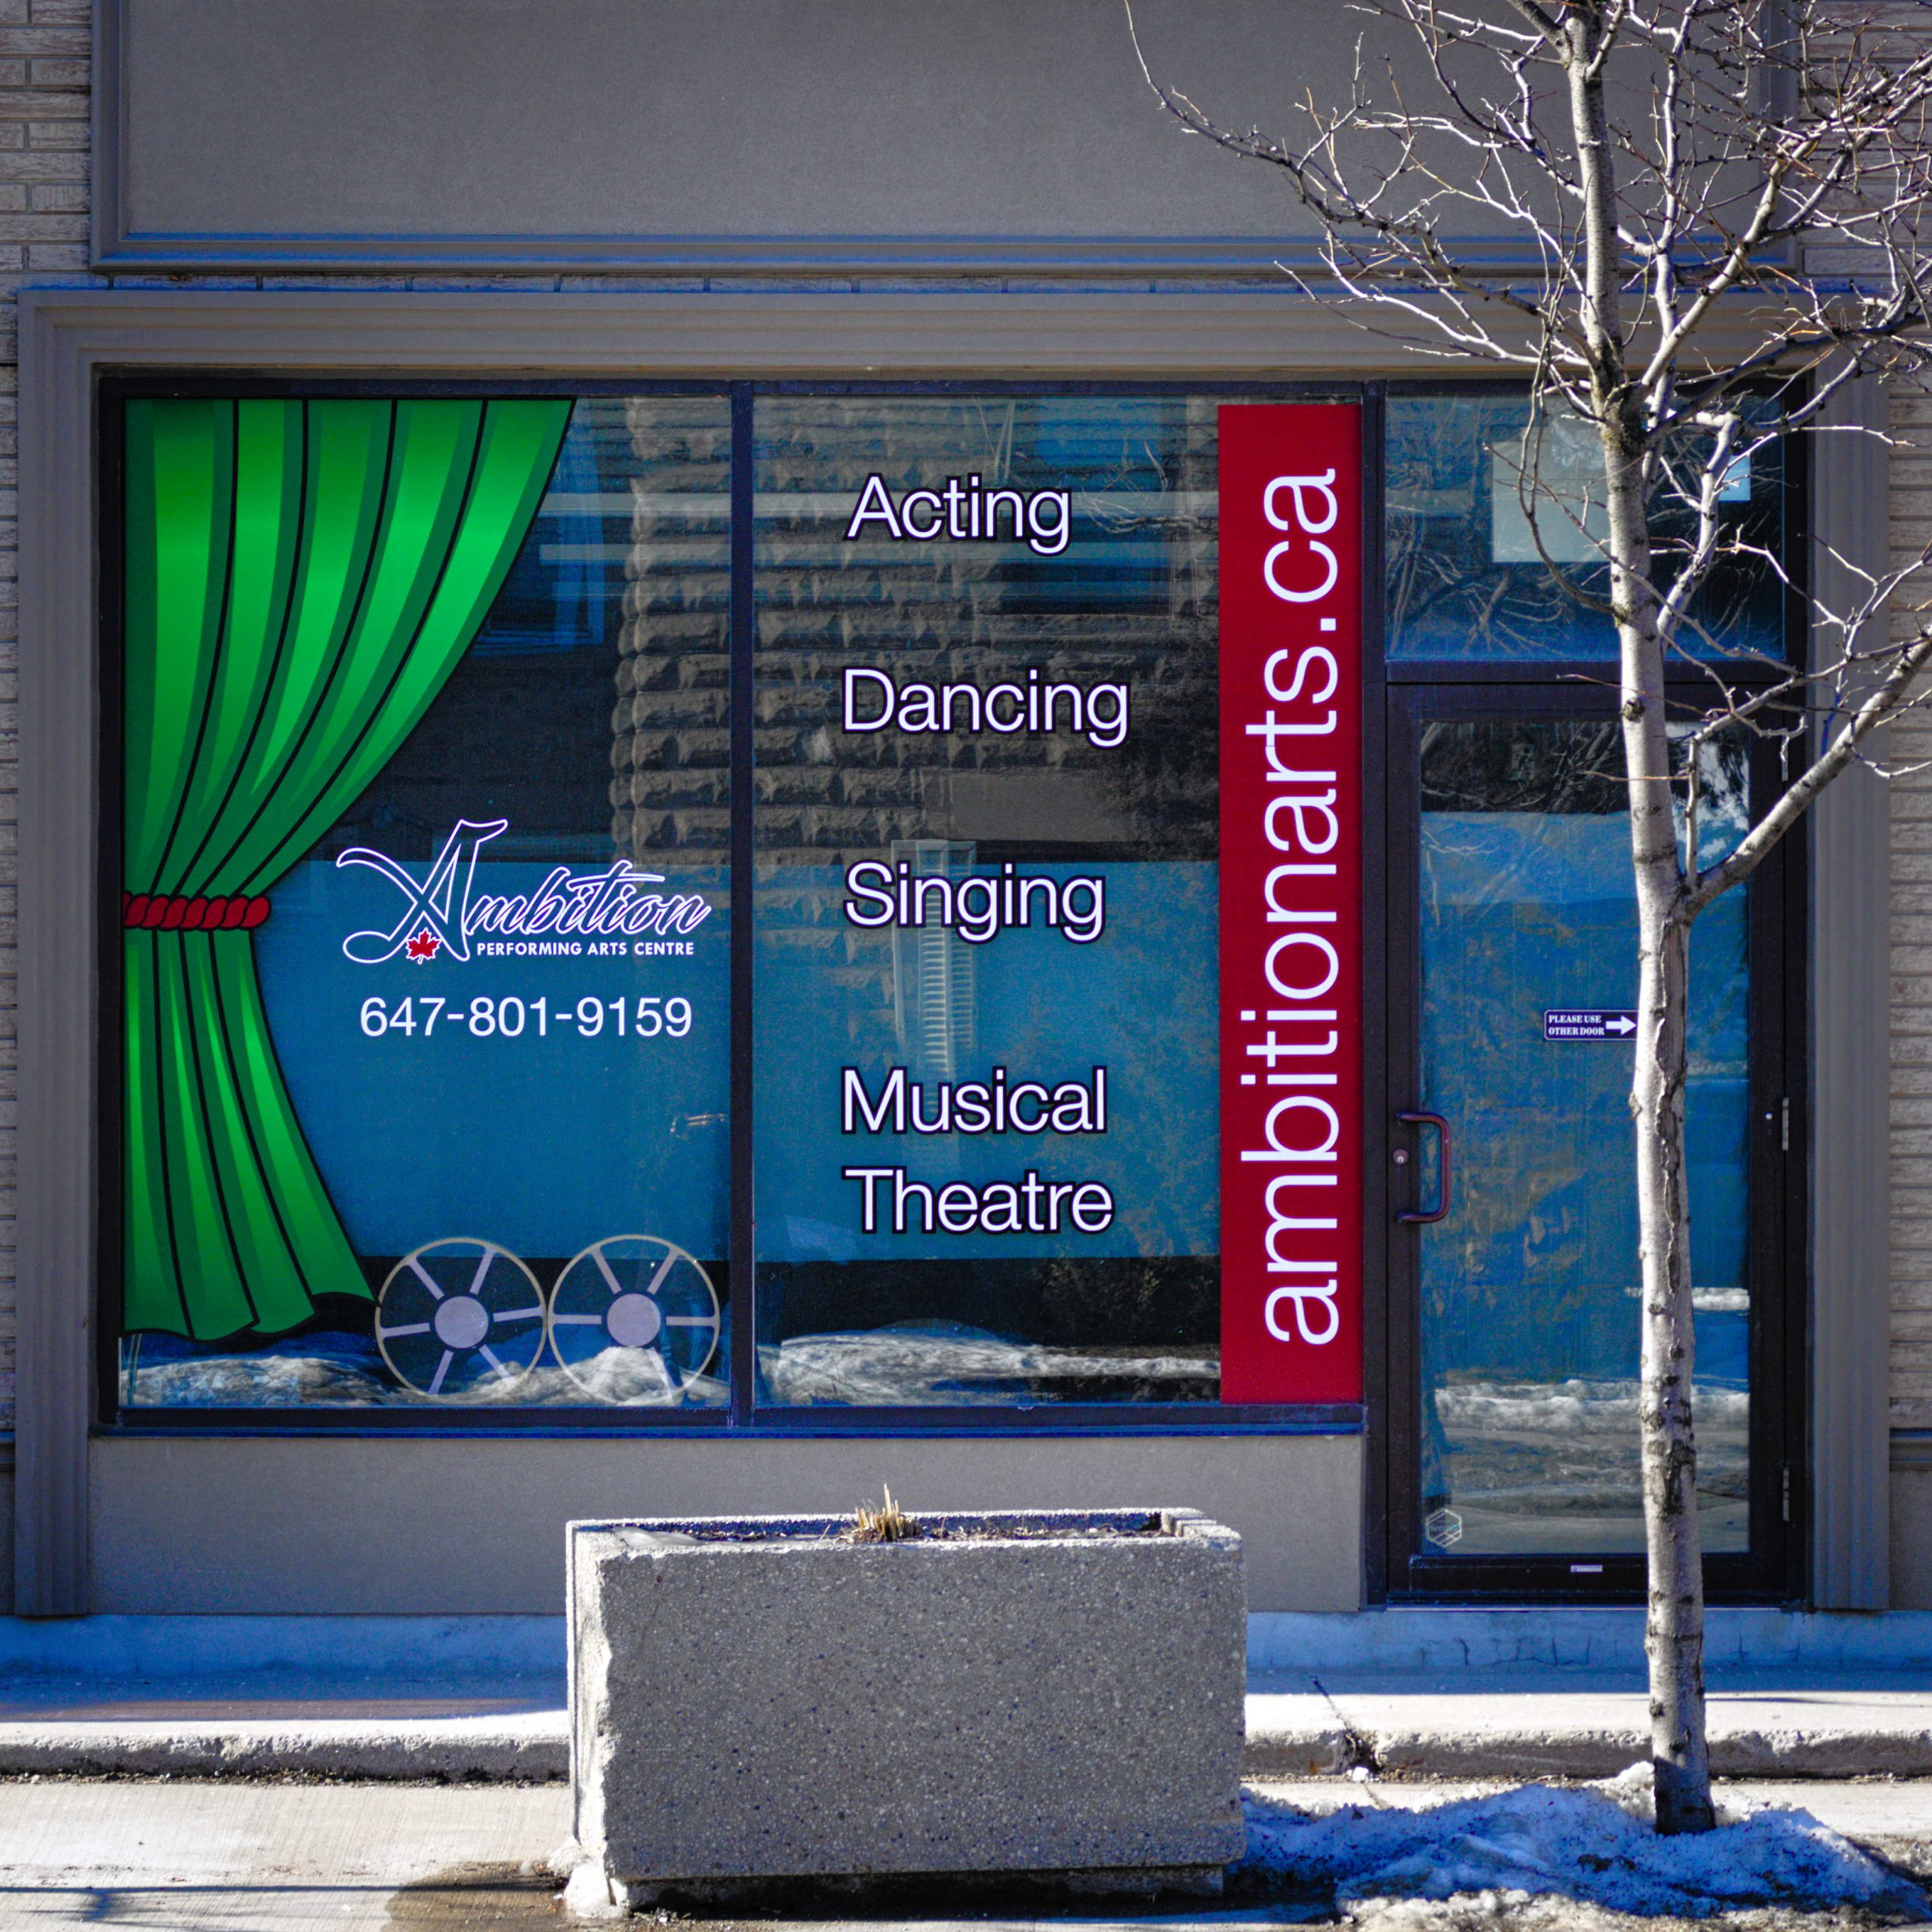 Ambition Performing Arts Centre